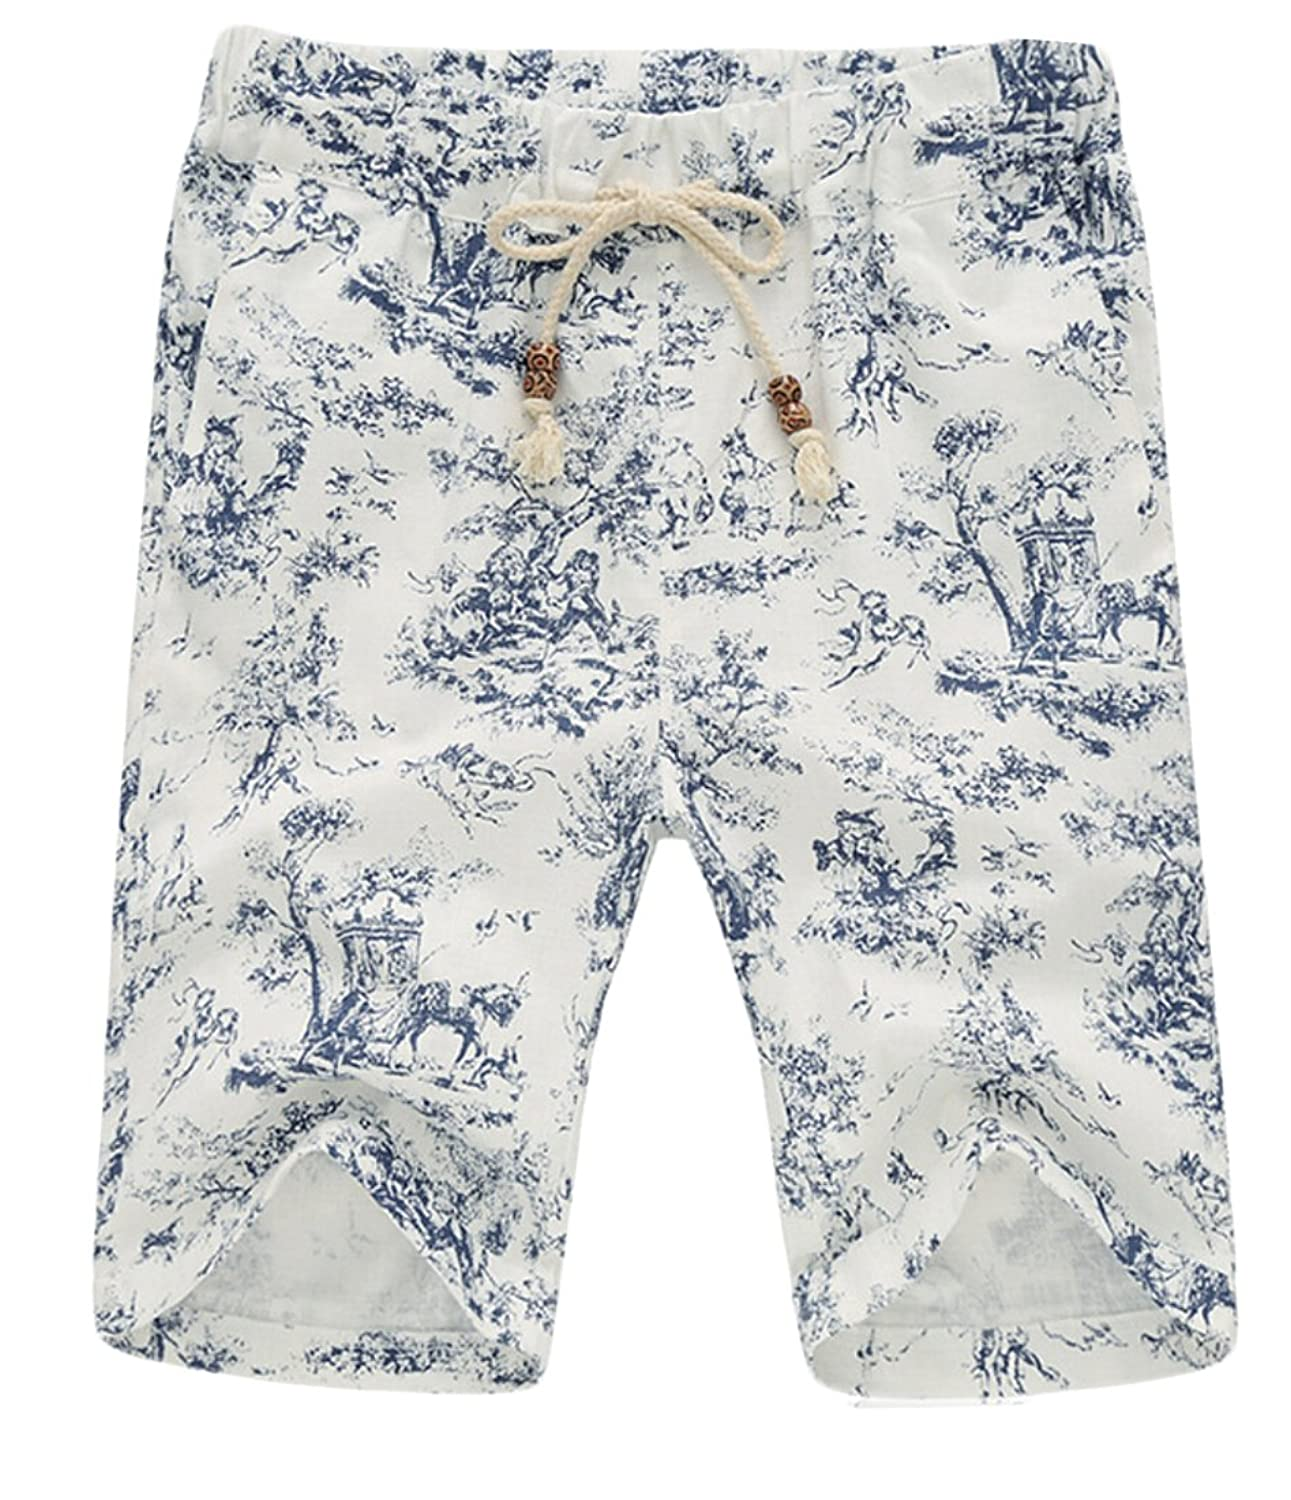 Acquaa Mens Casual Printed Loose Summer Boardshorts Shorts